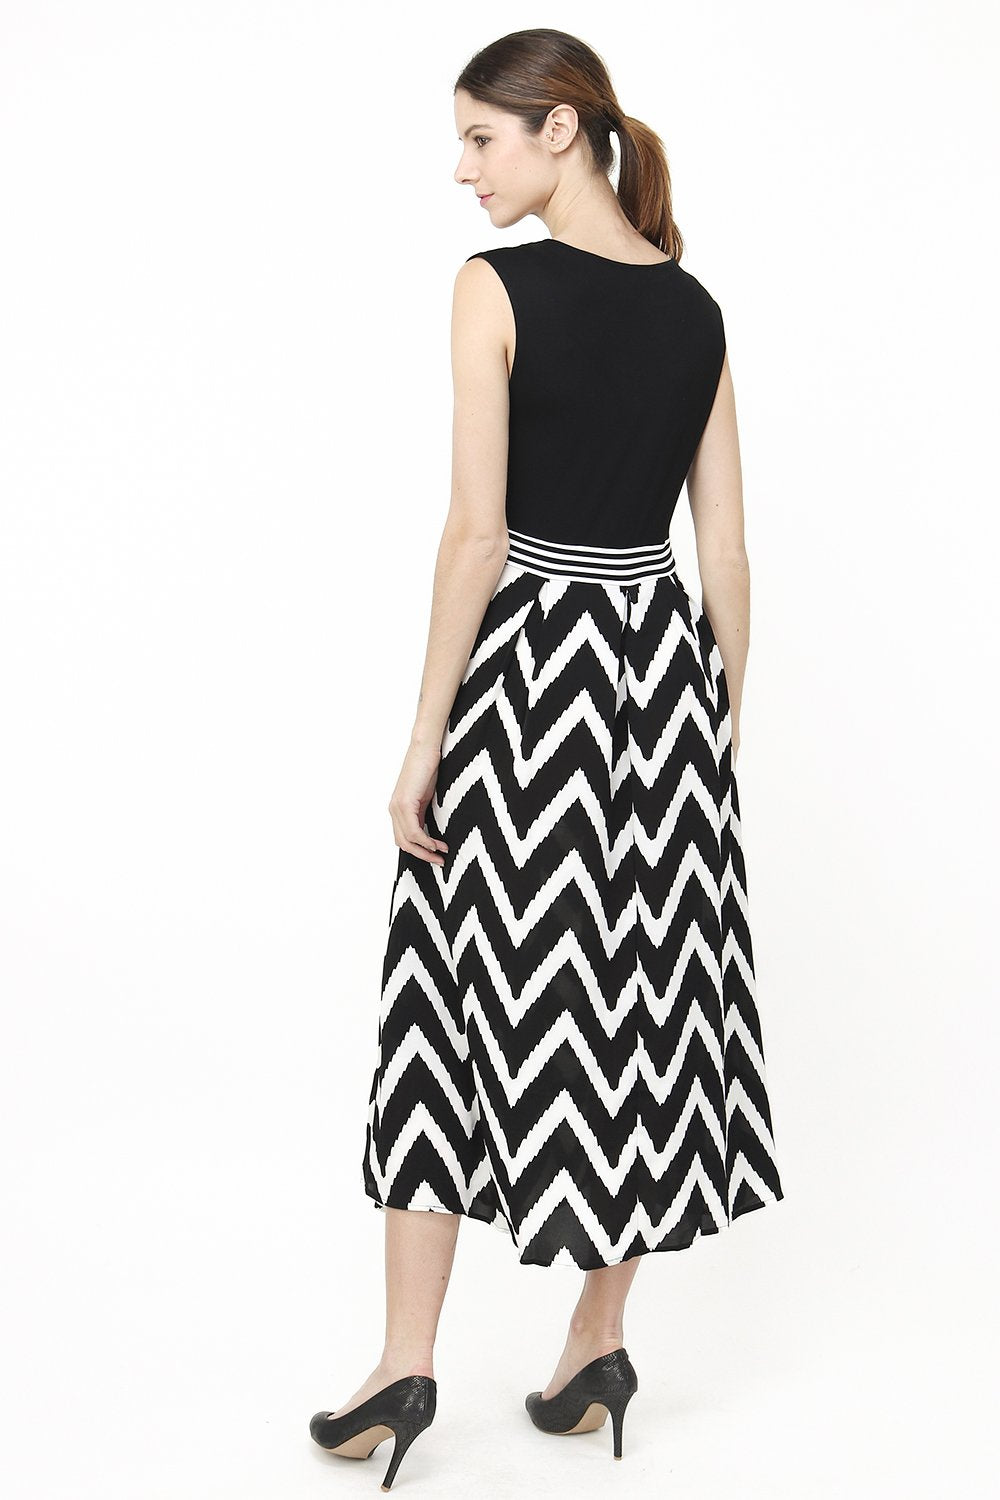 SLEEVELESS LONG DRESS WITH ZIG-ZAG PATTERNS